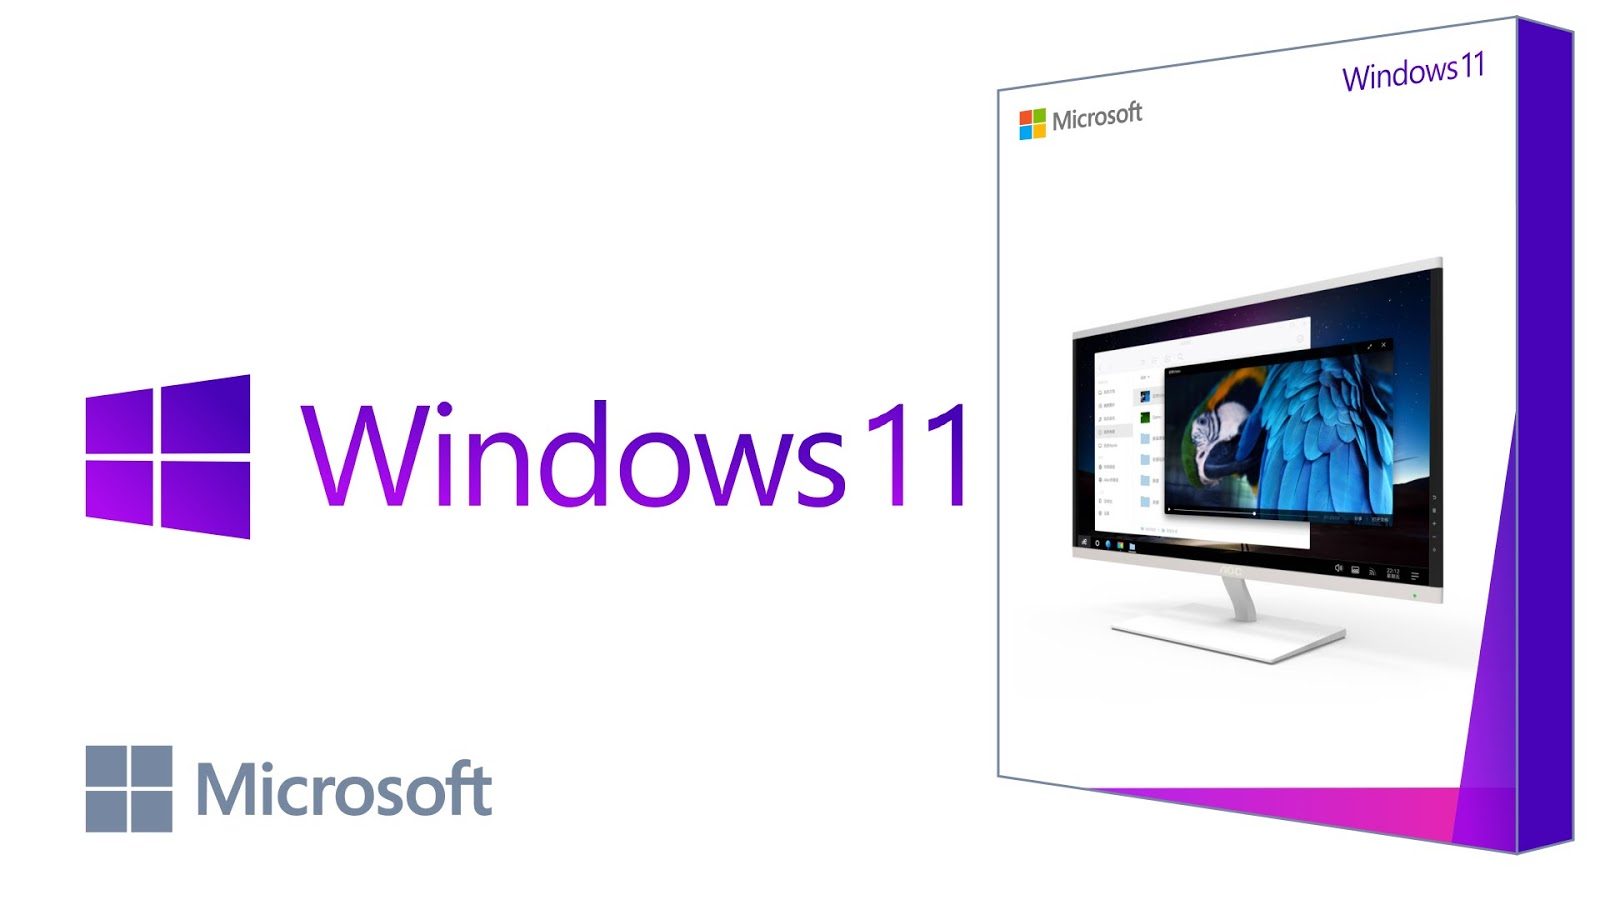 Microsoft skips Windows 11, announces Windows 12 in early 2019 - Teach New knowlege